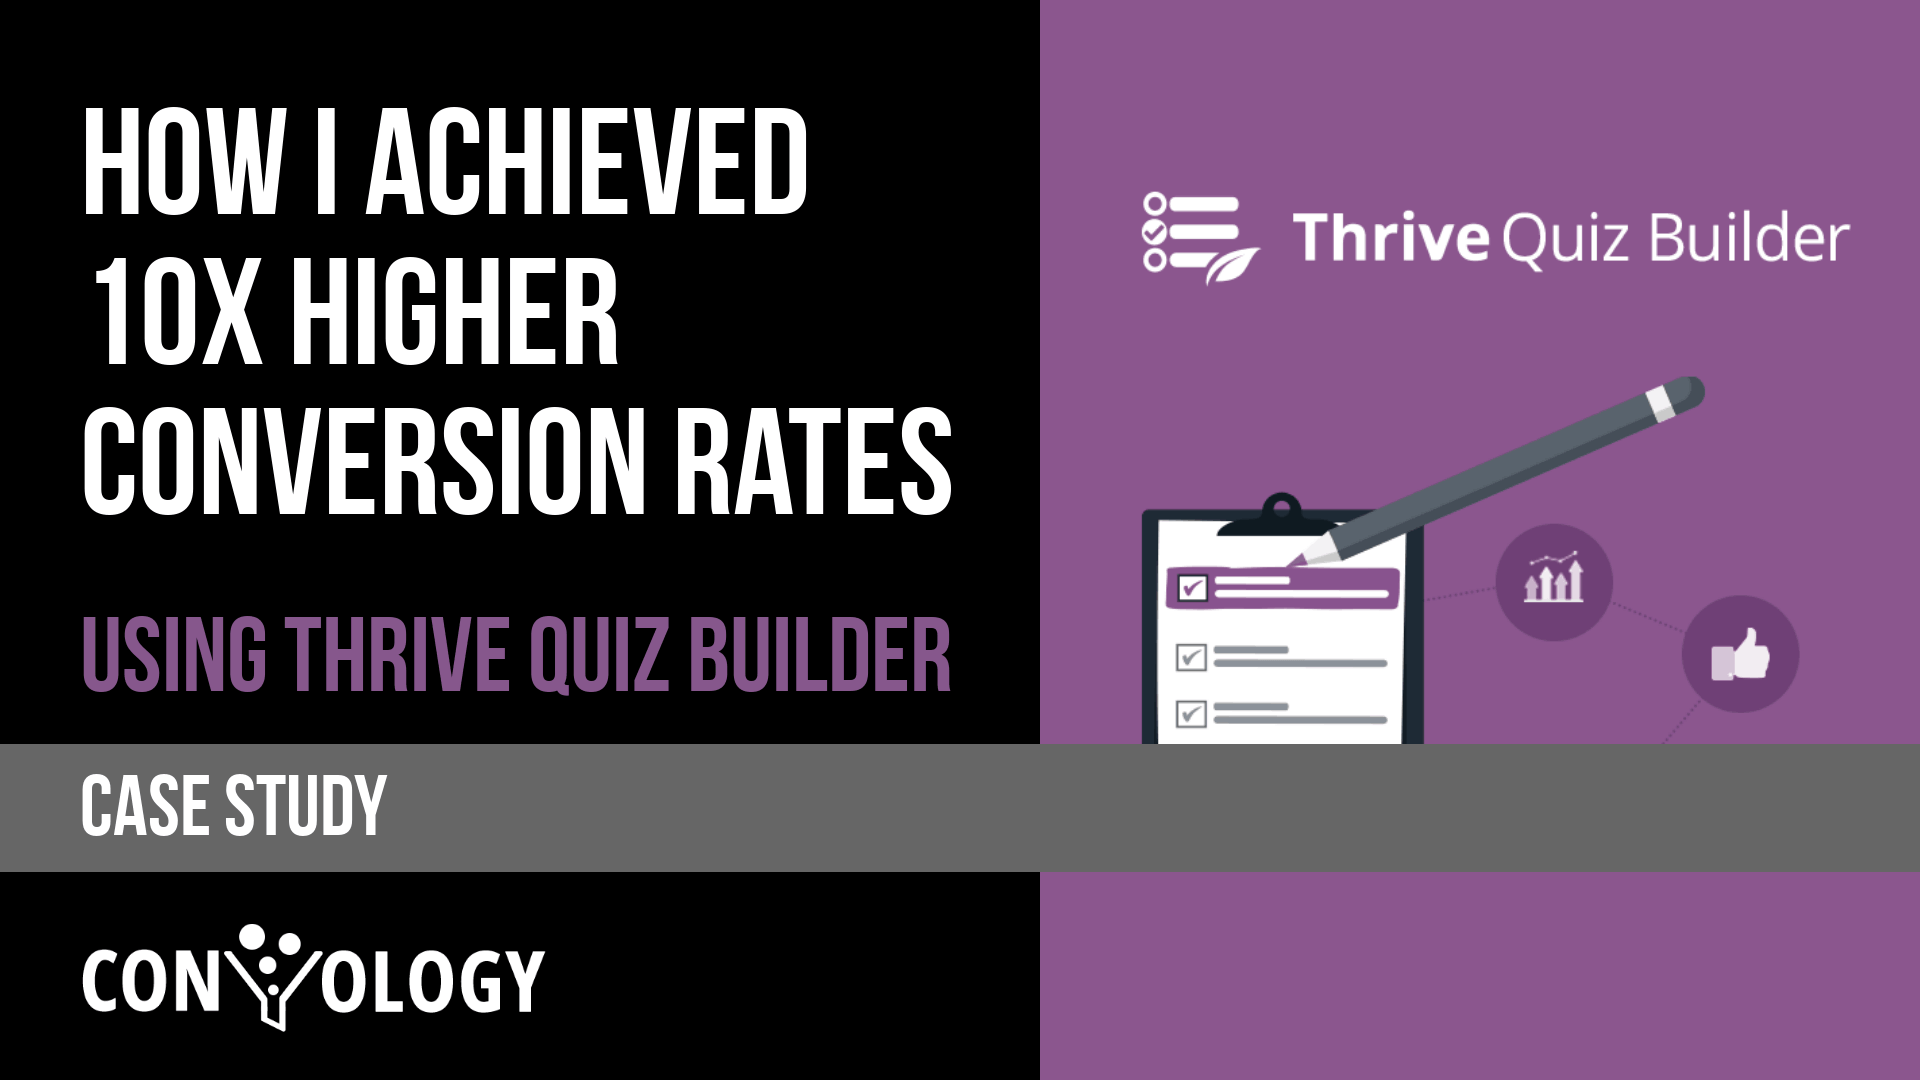 Thrive Quiz Builder Results